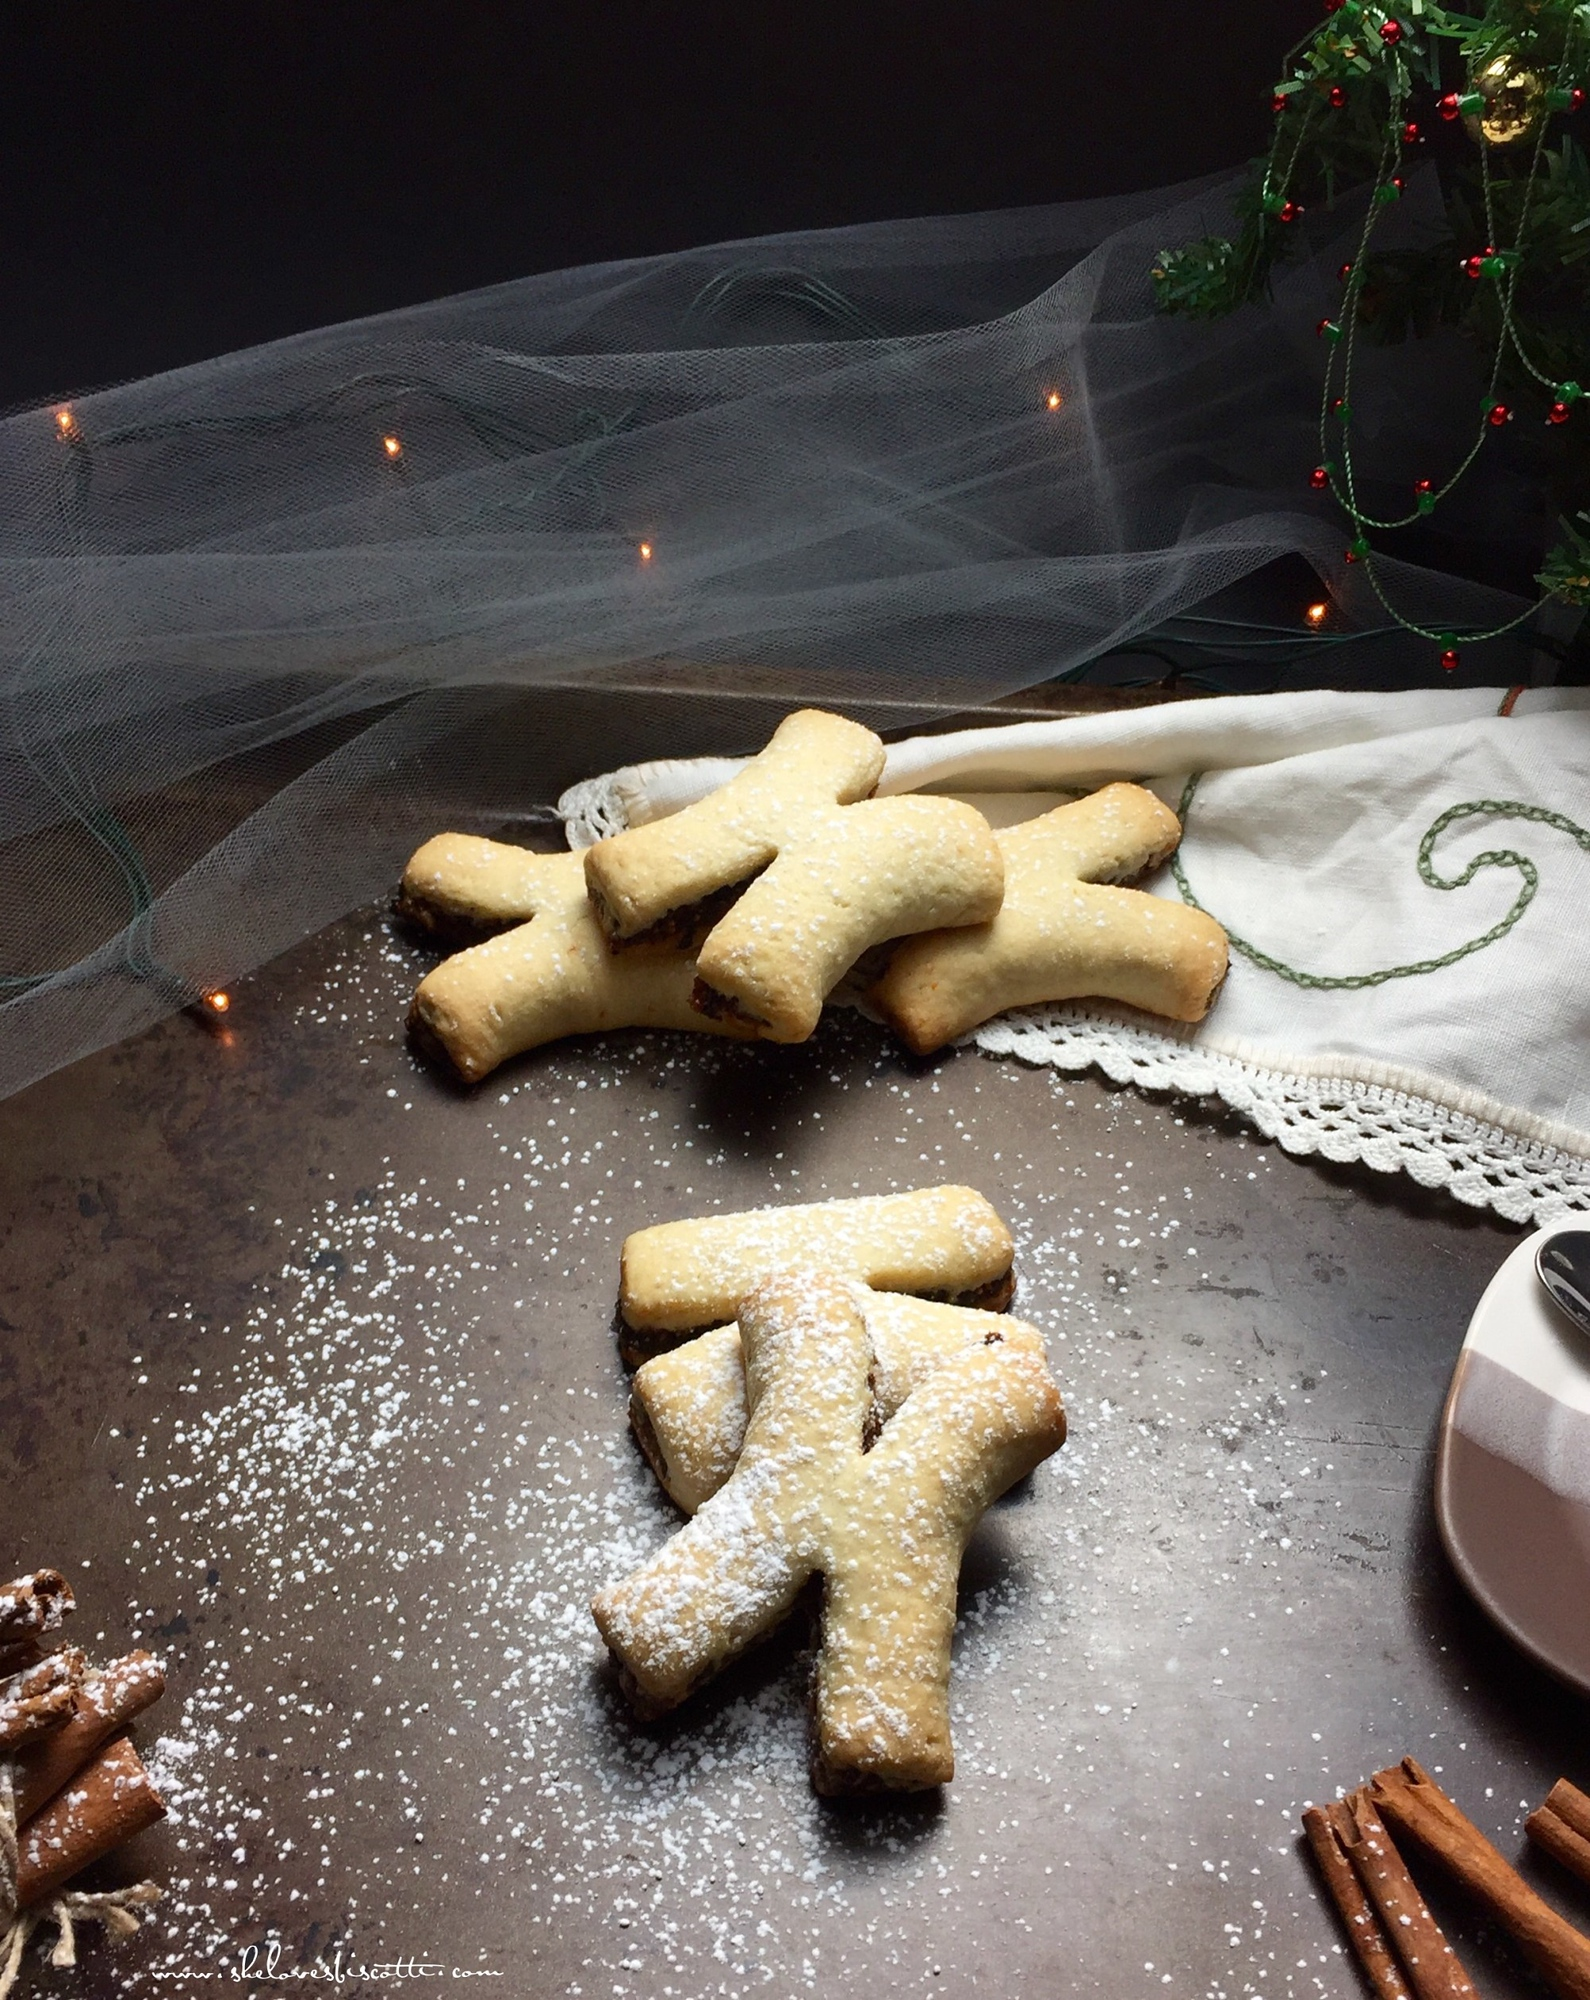 Cucidati are Italian spiced fig cookies and one of the best Christmas cookies from around the world, check out the others.